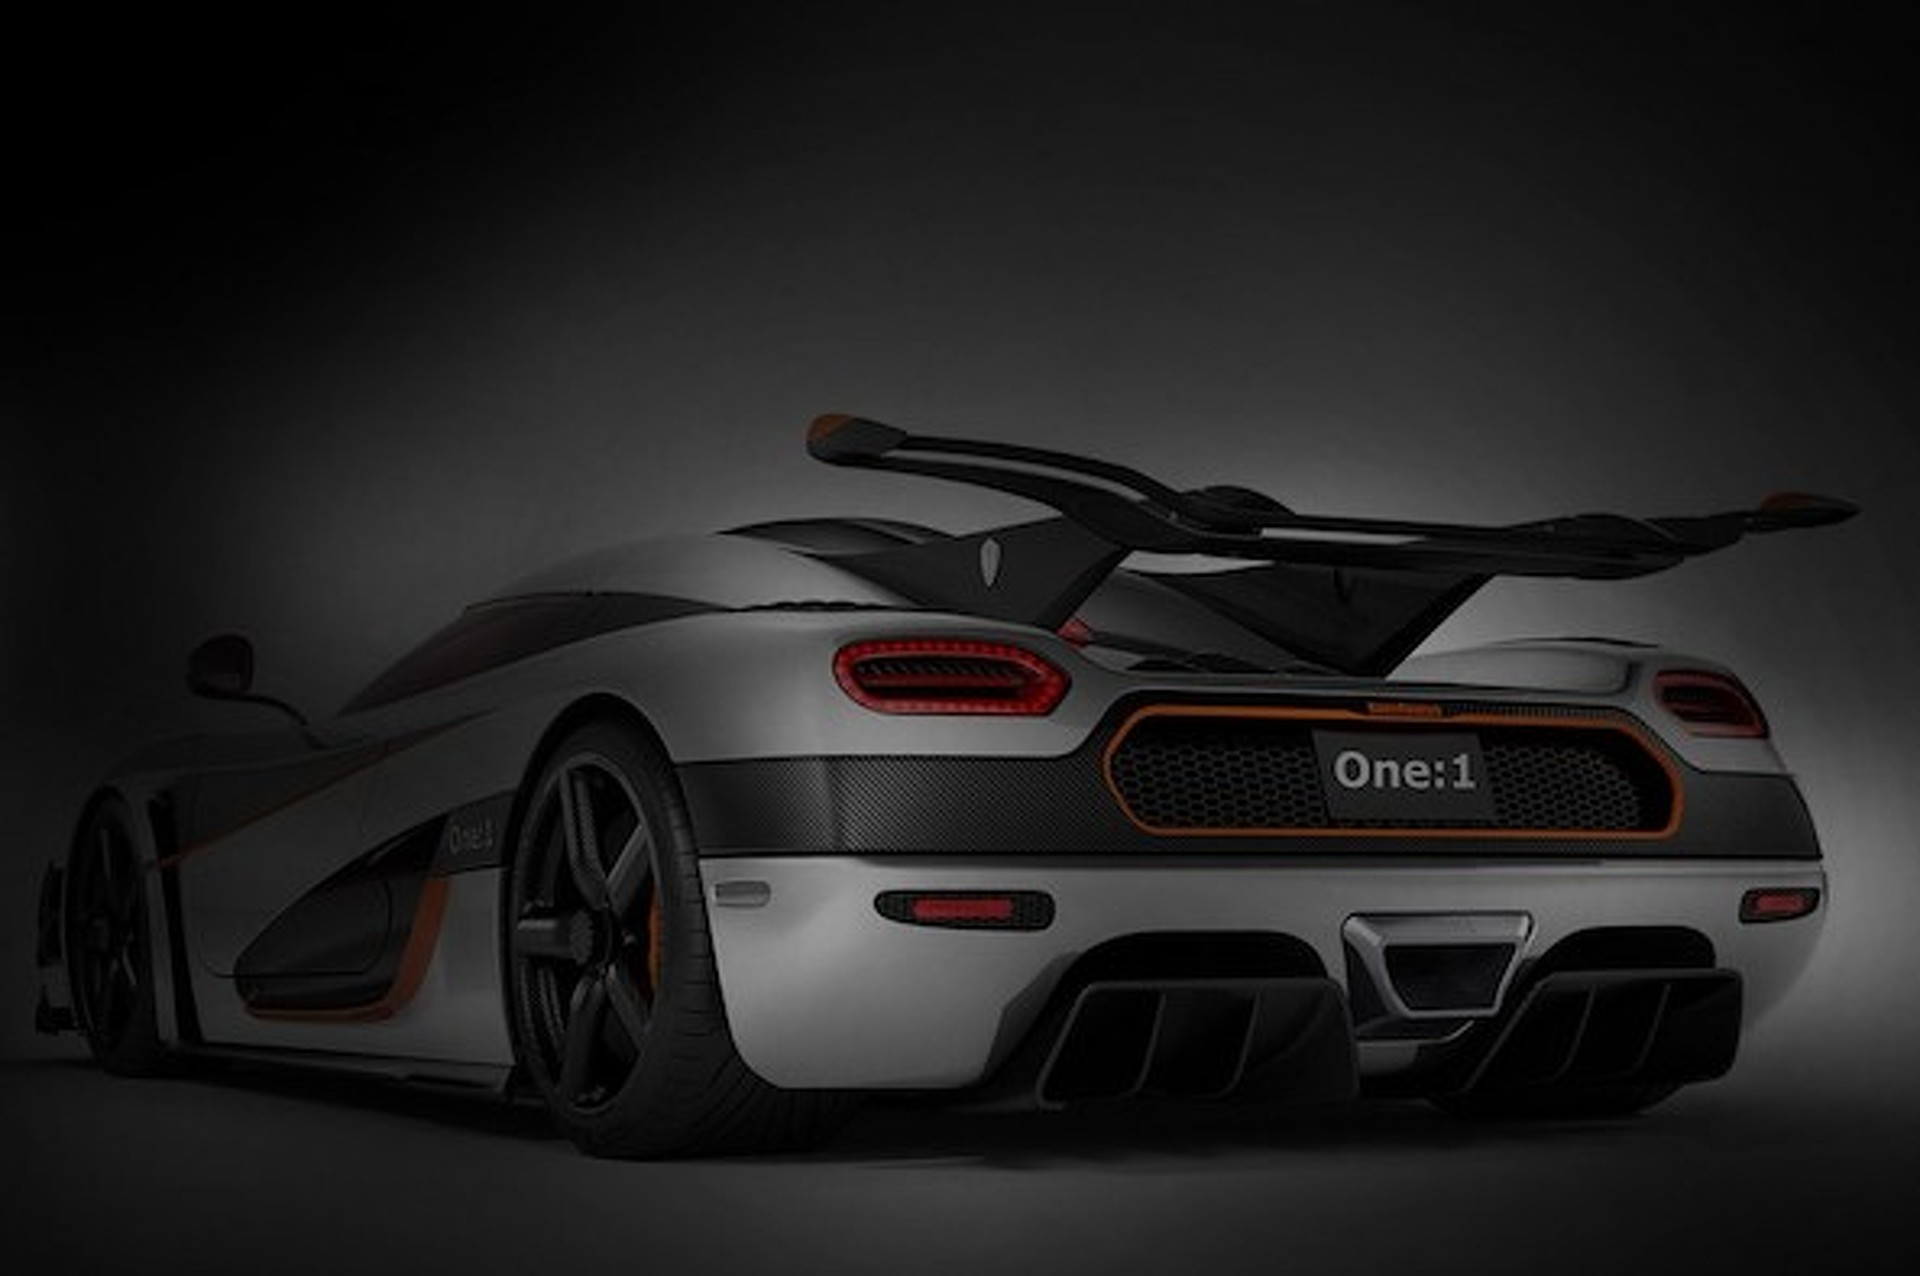 1,400HP Koenigsegg Agera One:1 Hypercar Teased